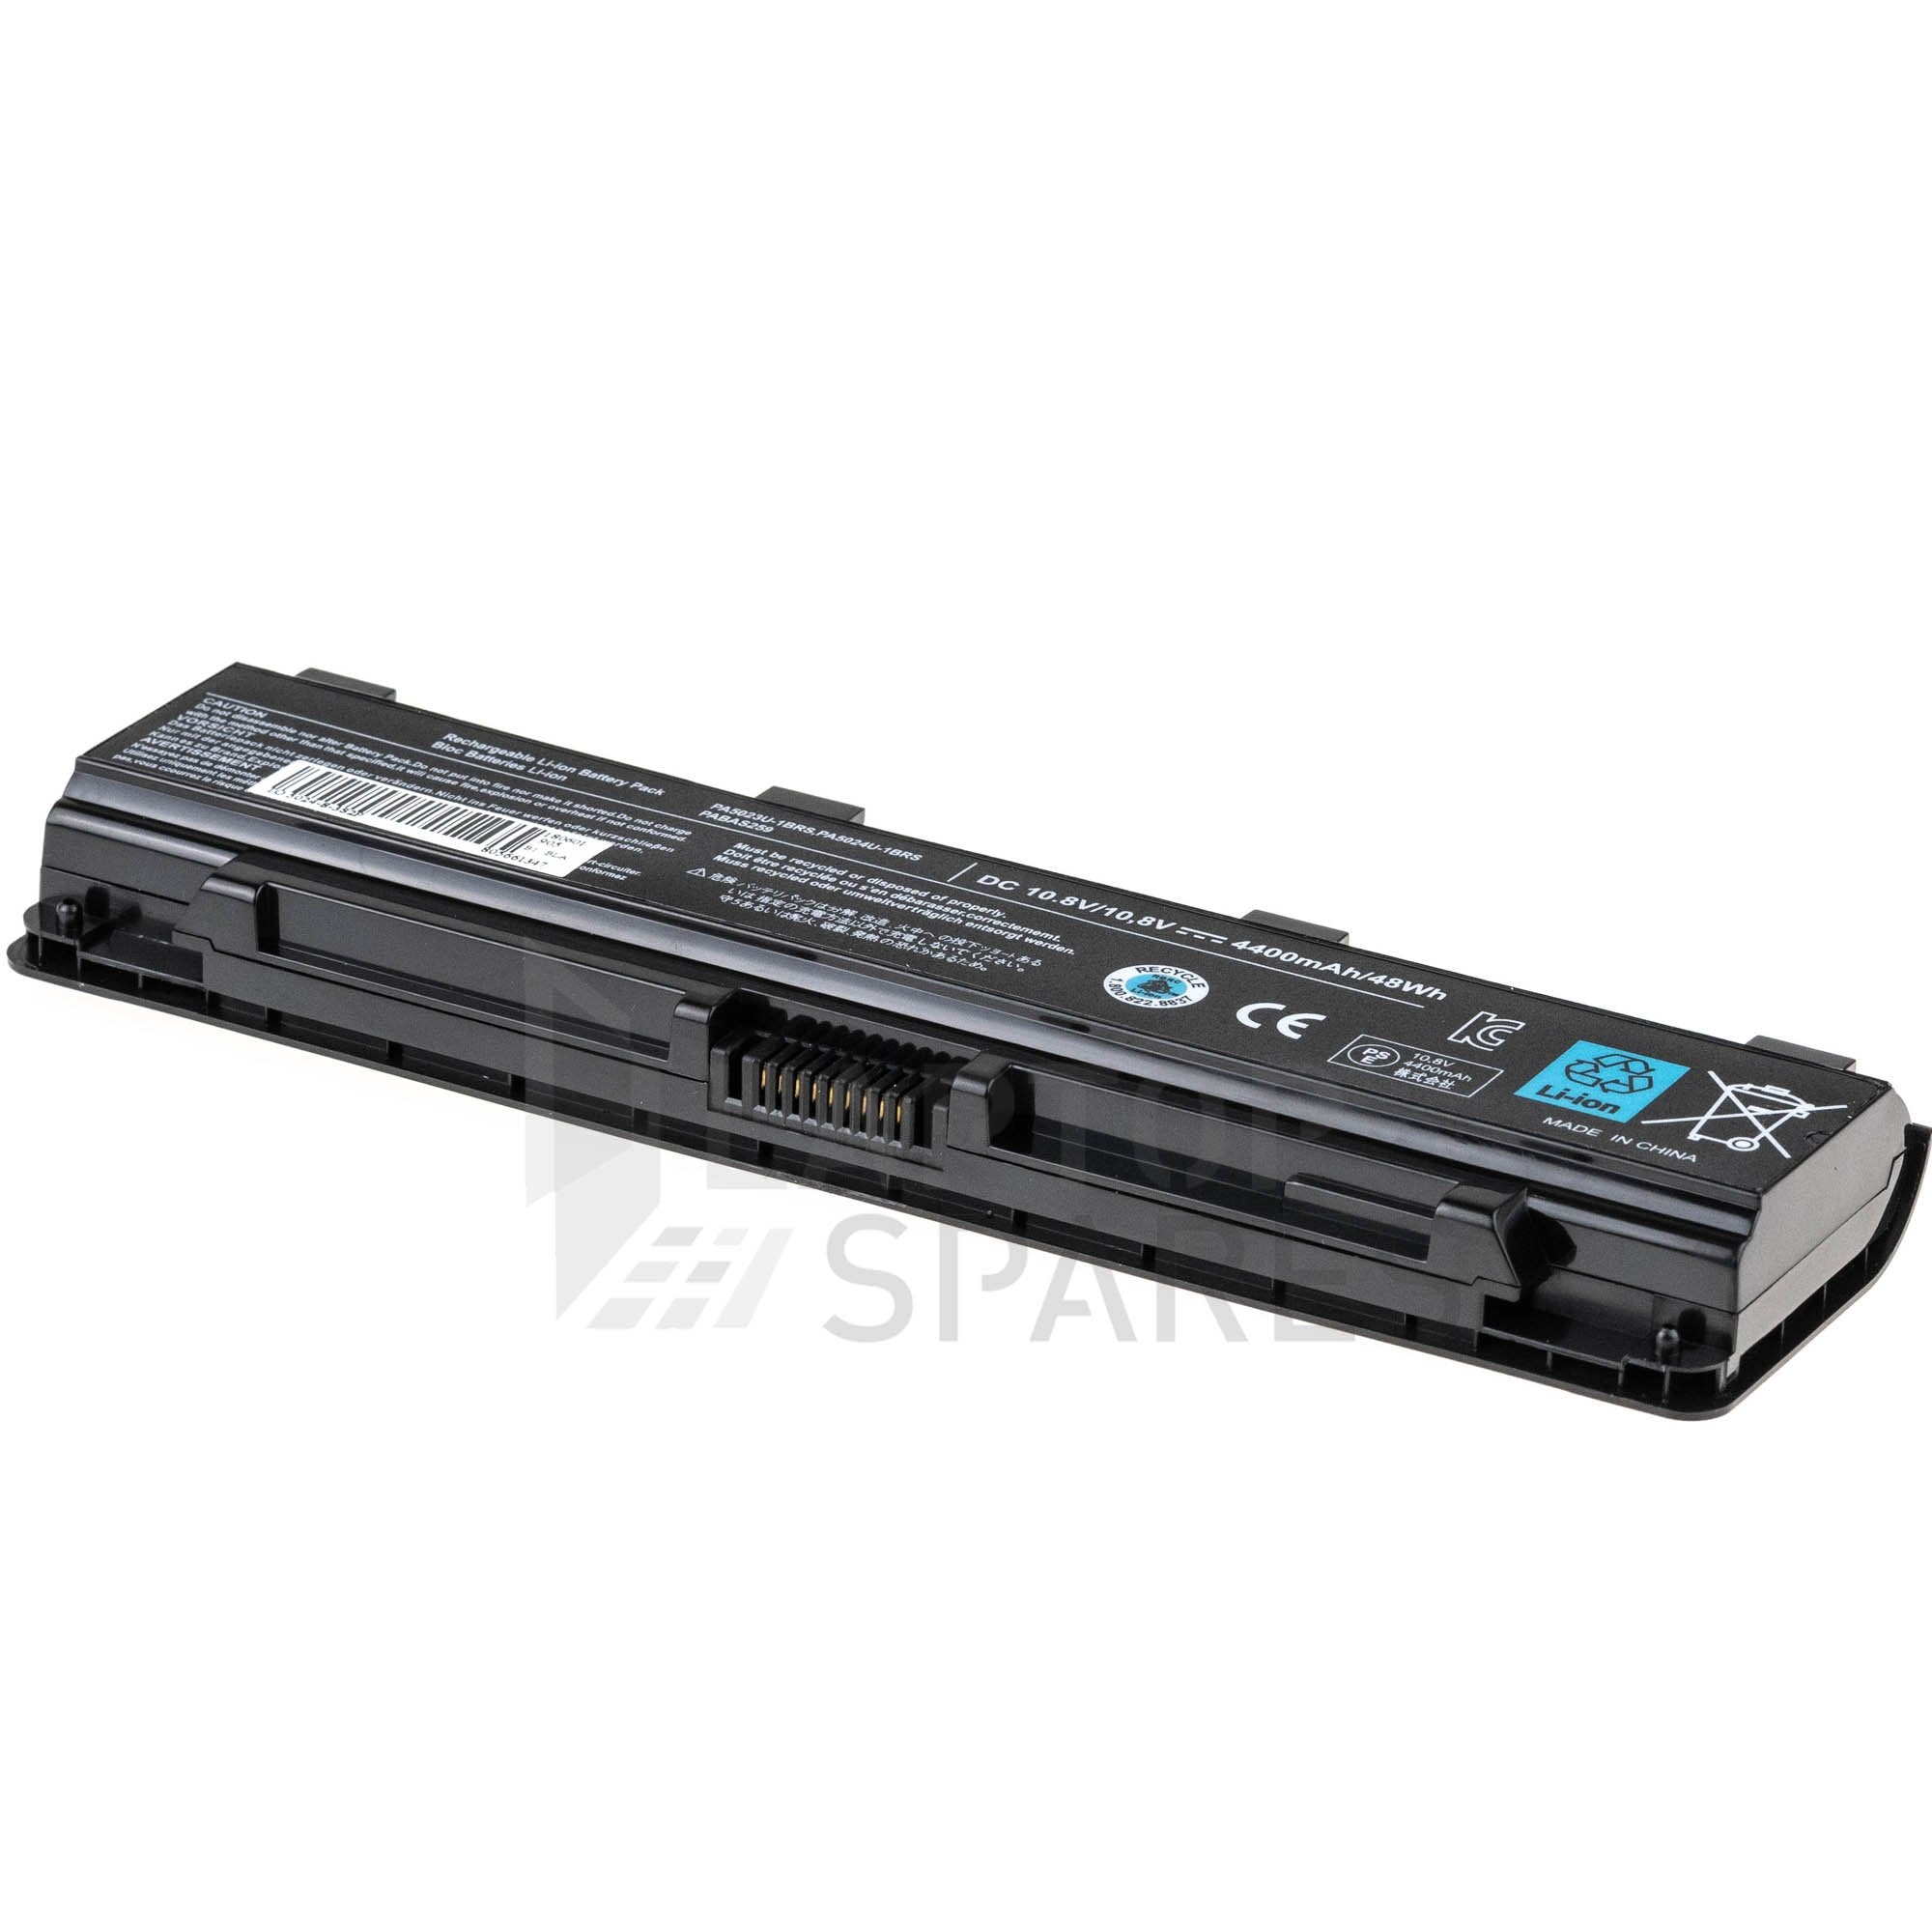 Toshiba Satellite M840 M840D  M845 M845D 4400mAh 6 Cell Battery